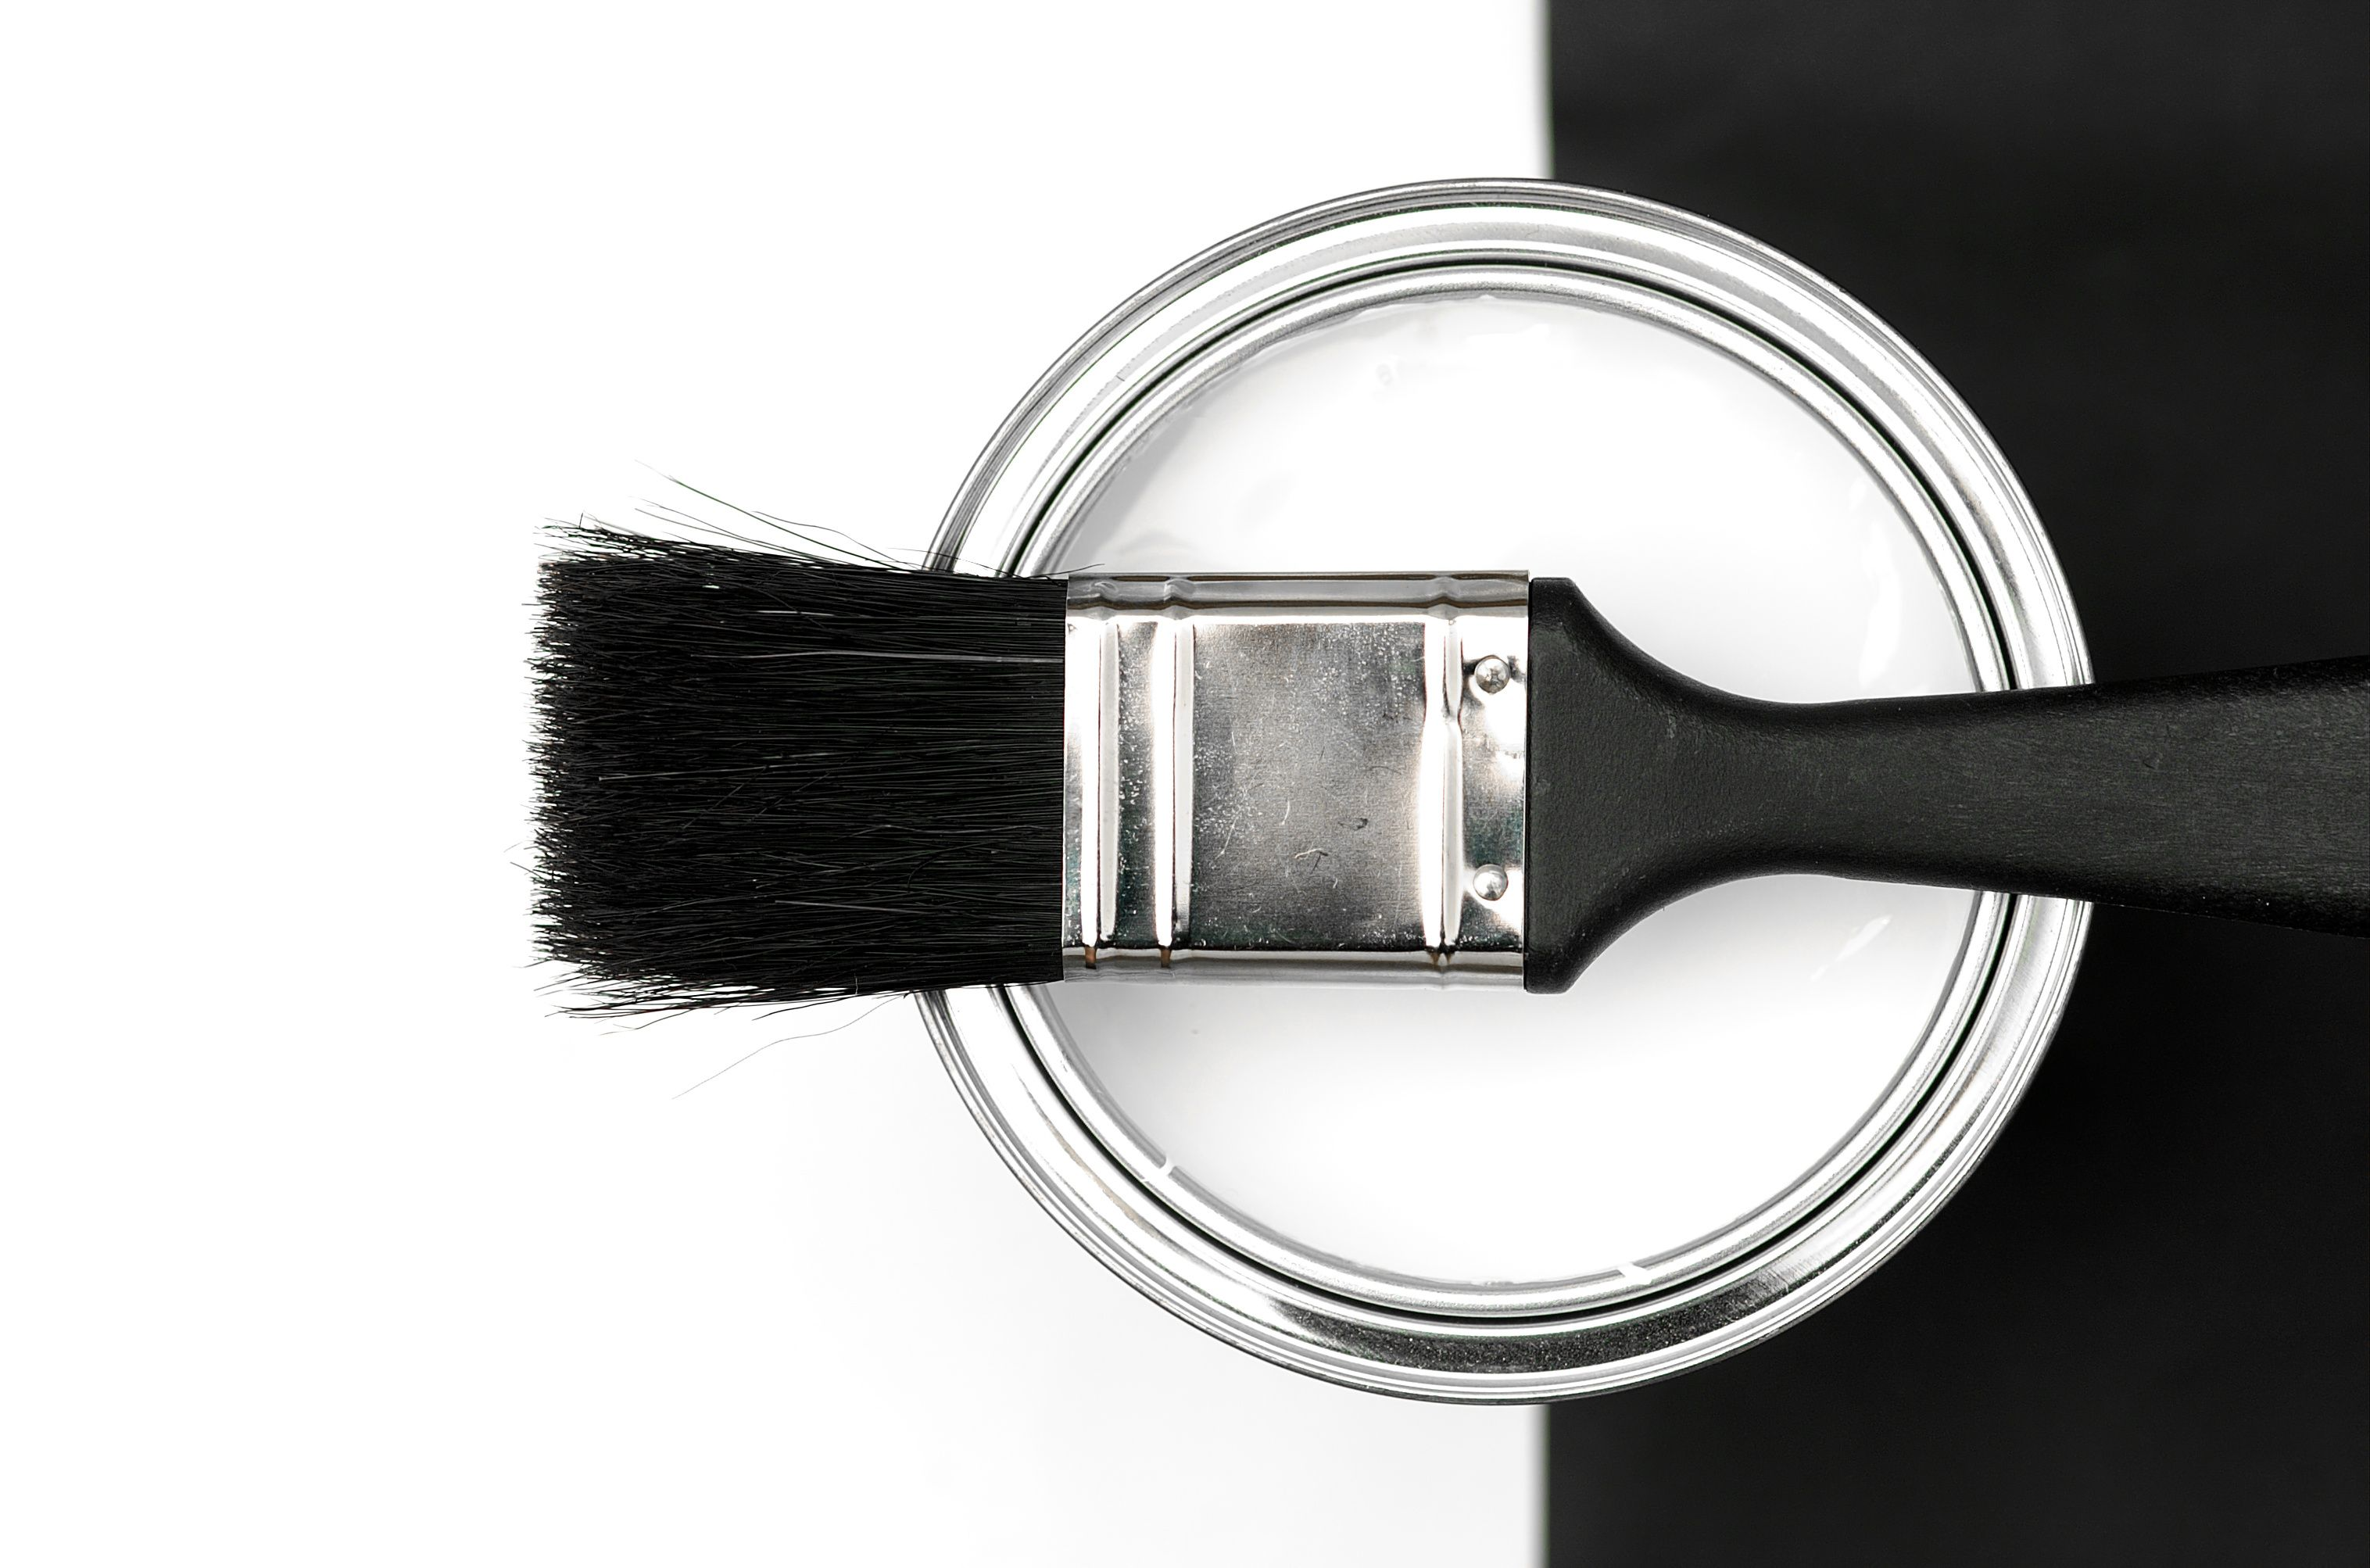 House Painting House Painting Logos Free  Painting Services  Pinterest  House